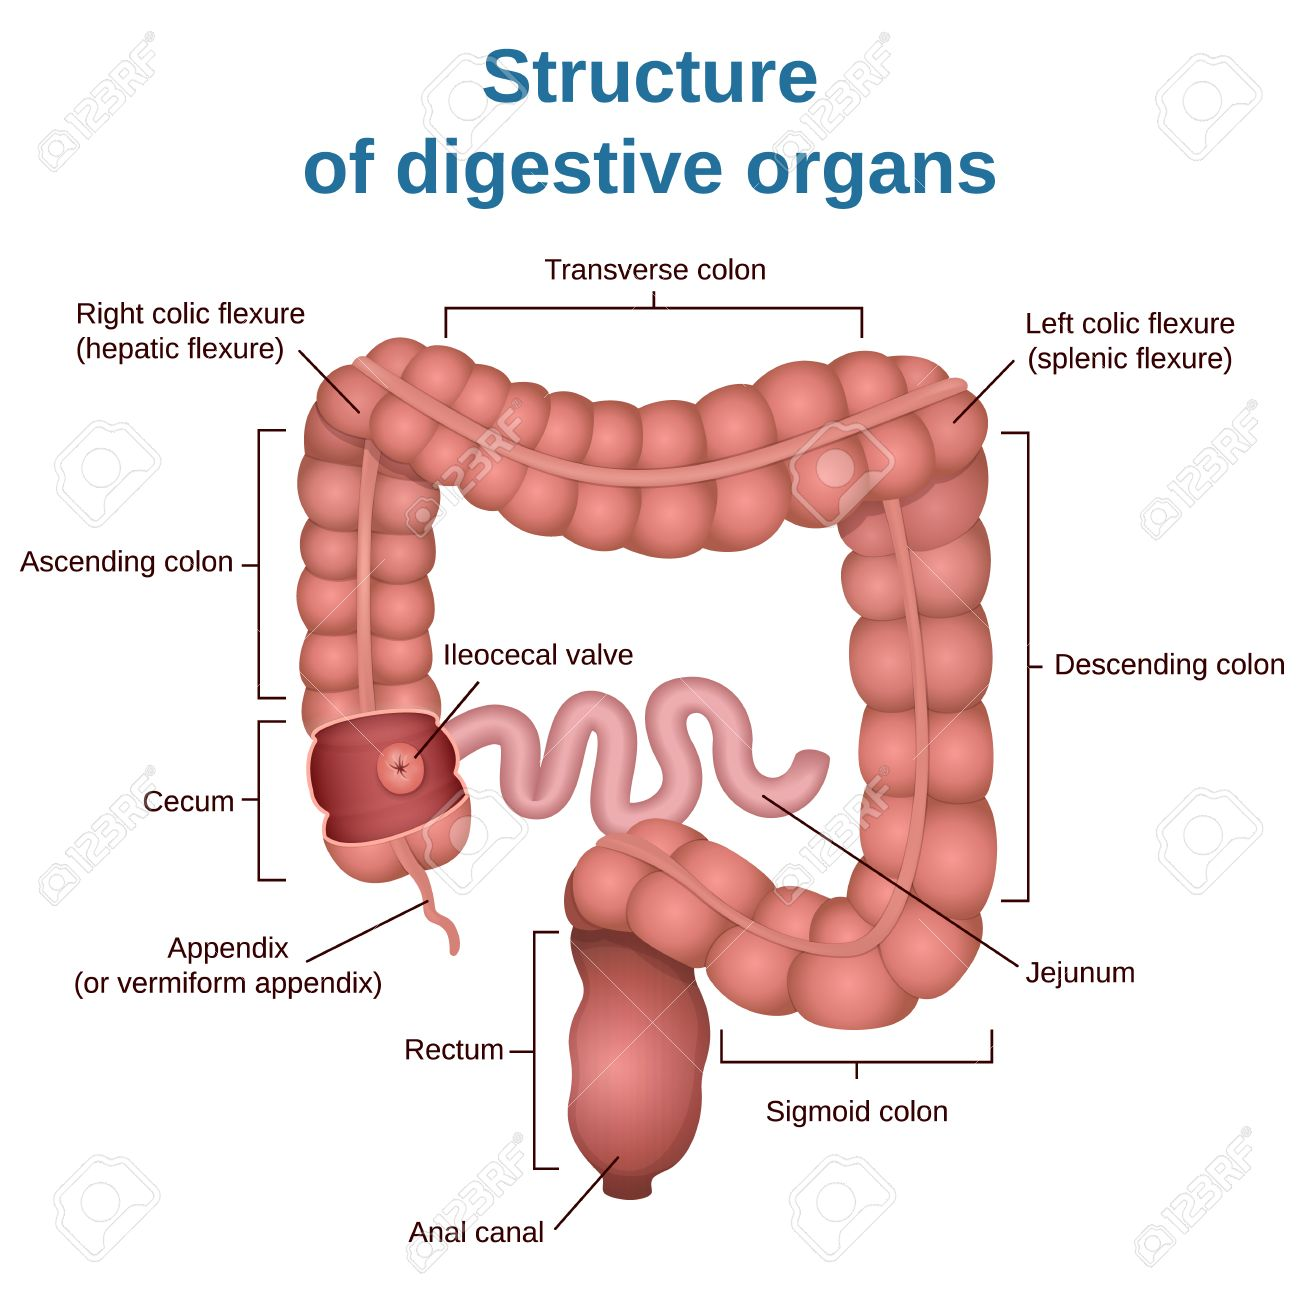 circuit structure of the digestive system, colon and small intestine - 65935539